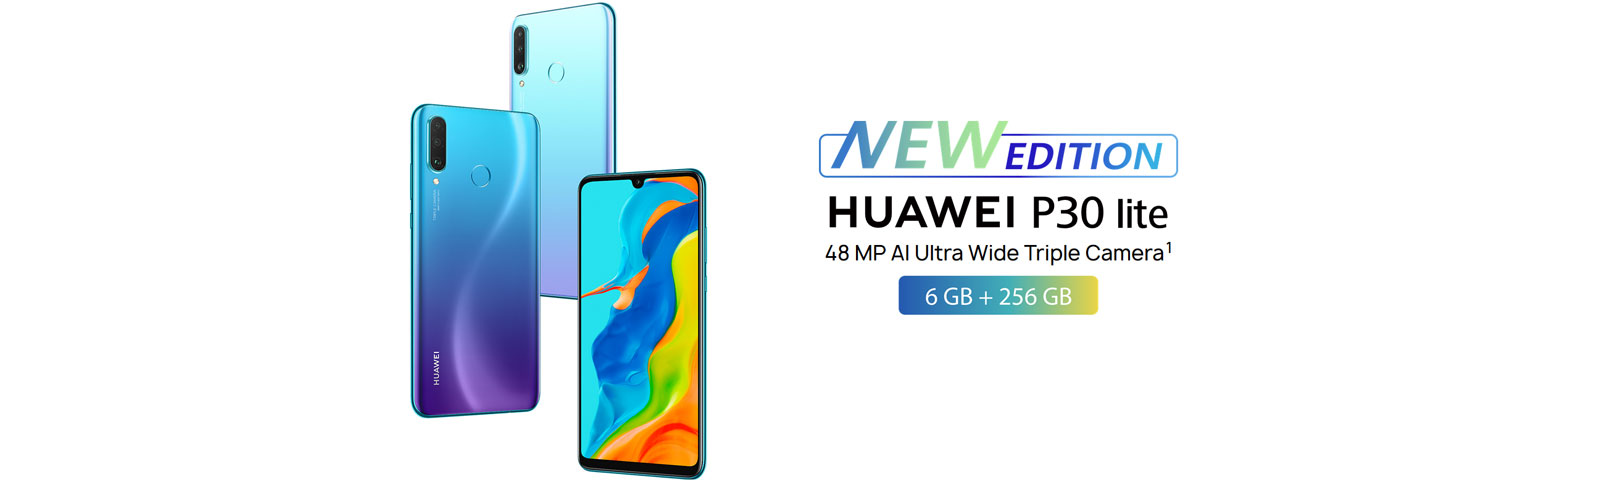 Huawei P30 Lite New Edition goes official with 6GB RAM 256GB storage, 48MP main camera